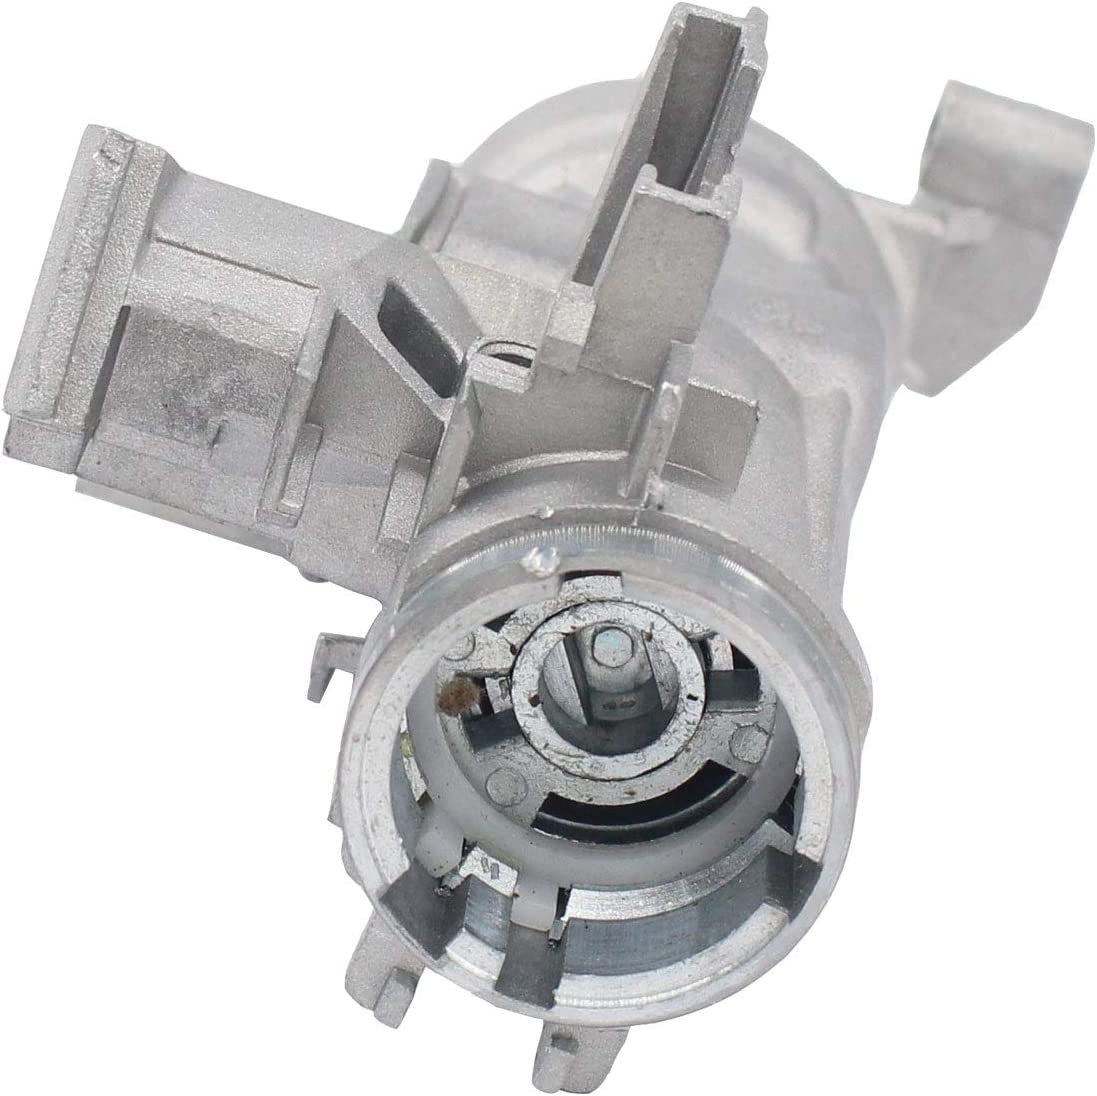 NewYall Steering Lock Without Ignition Starter Switch